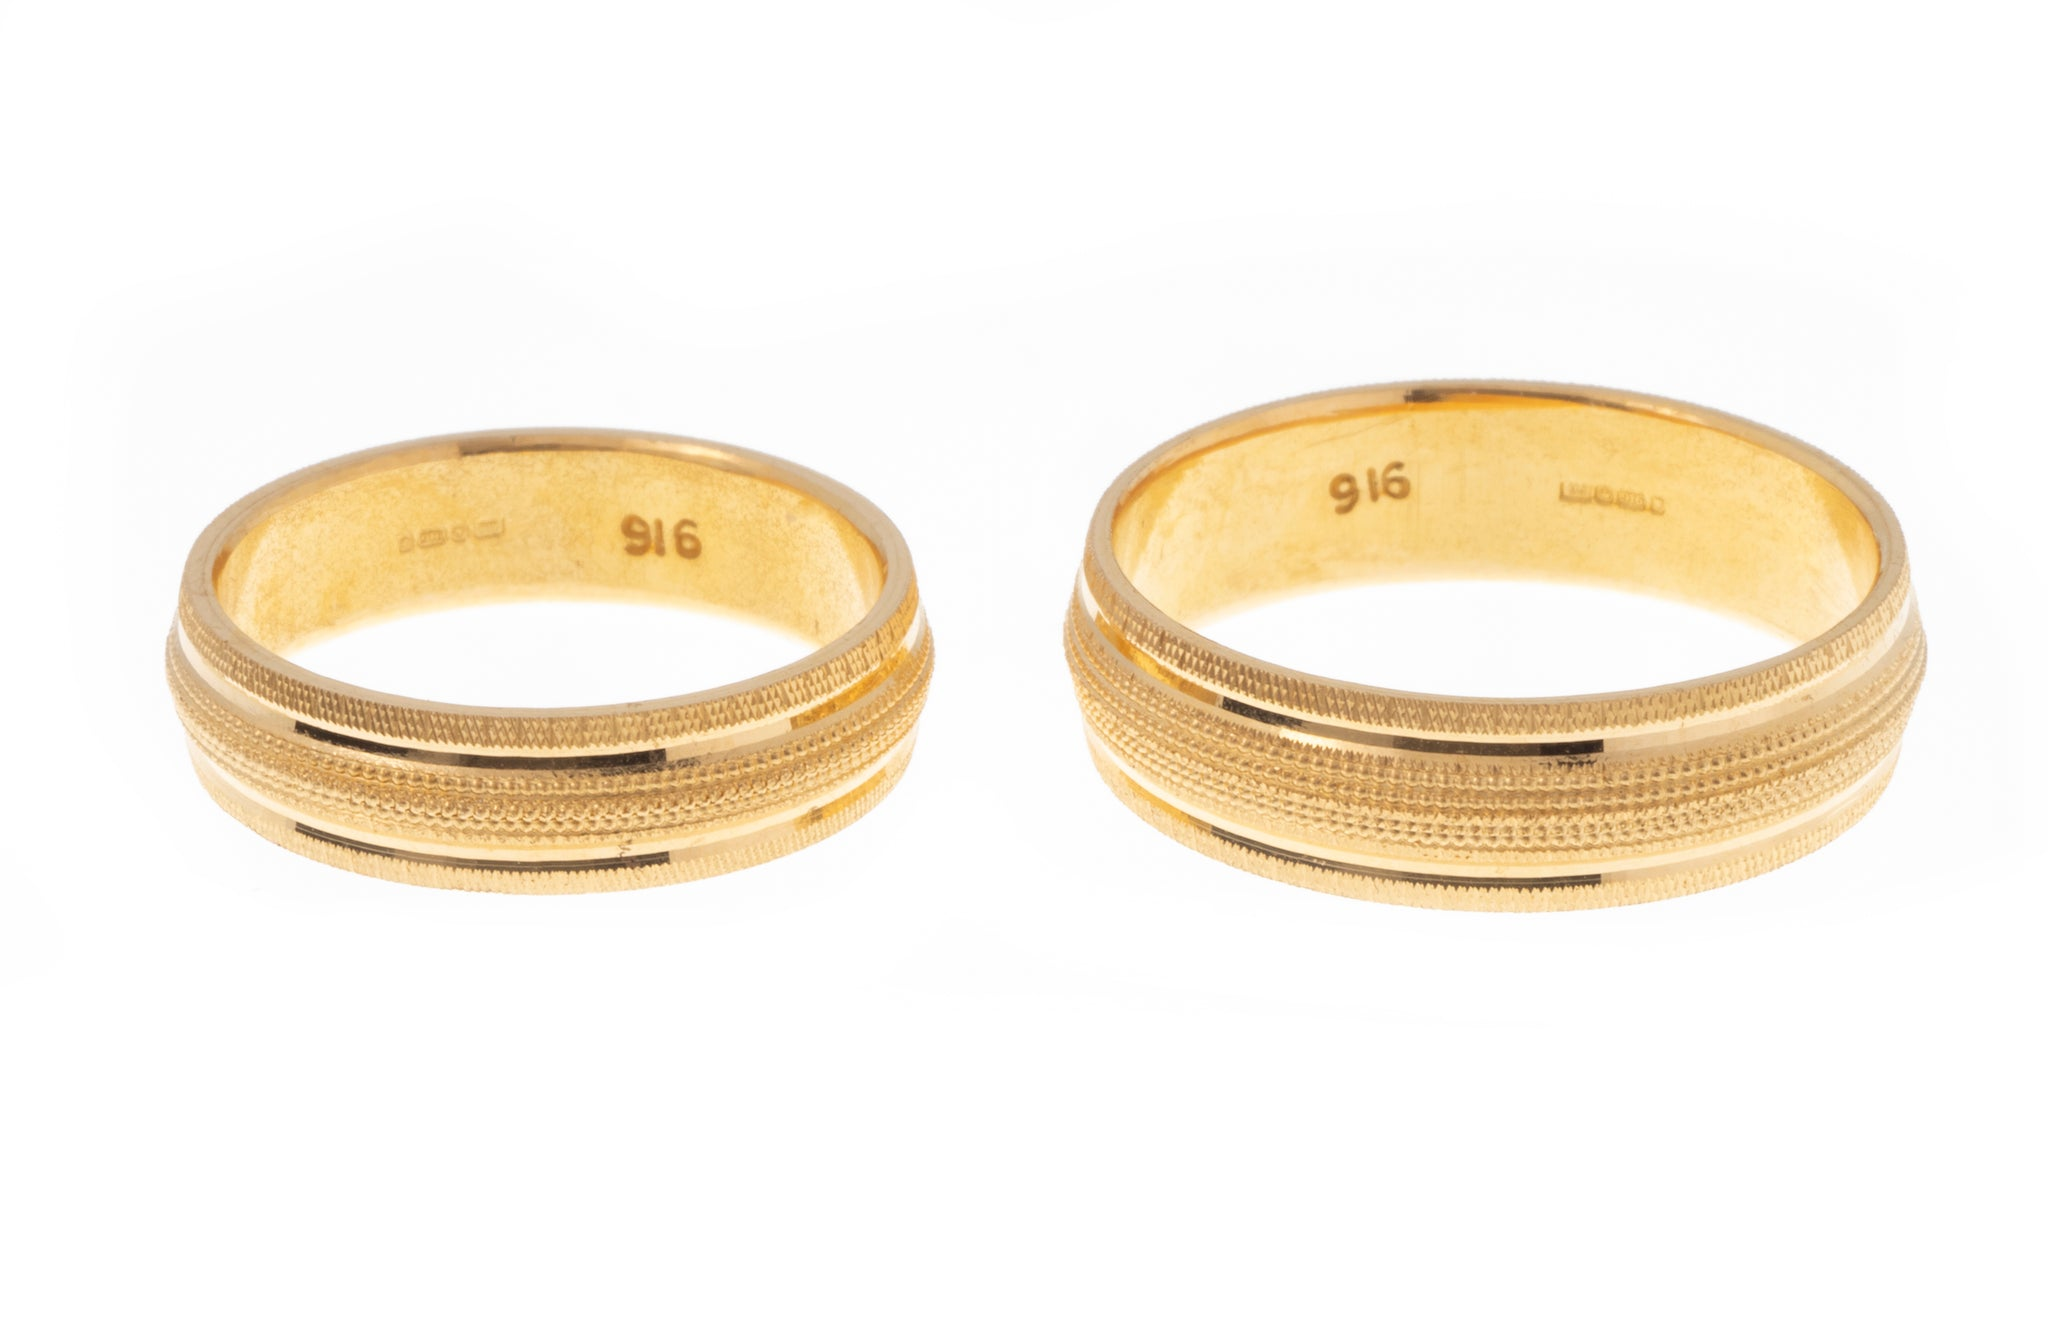 Specialists in Diamond, 18ct Gold & 22ct Gold Jewellery | London